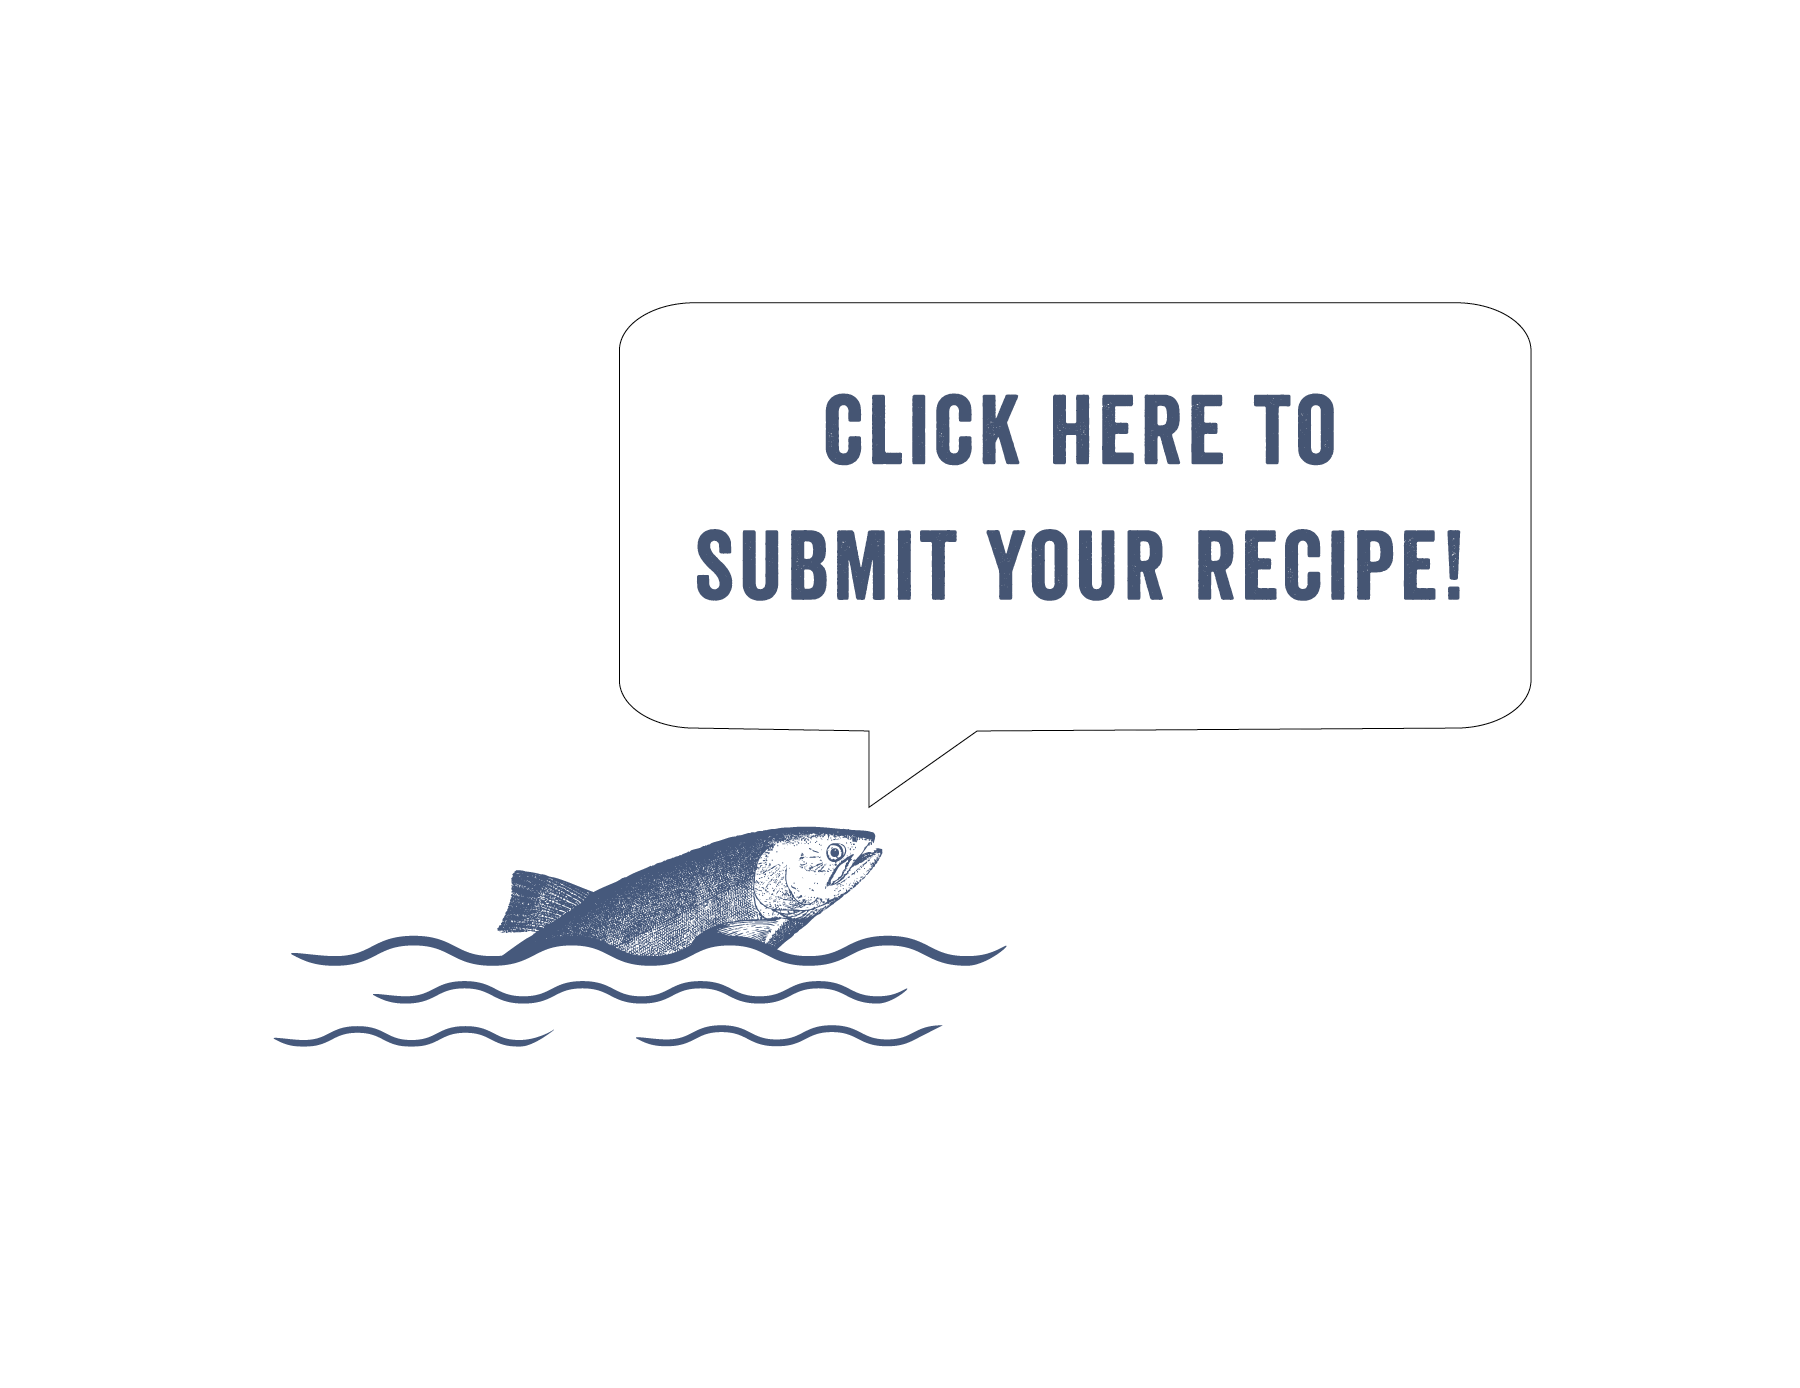 Click Here to Submit Your Recipe